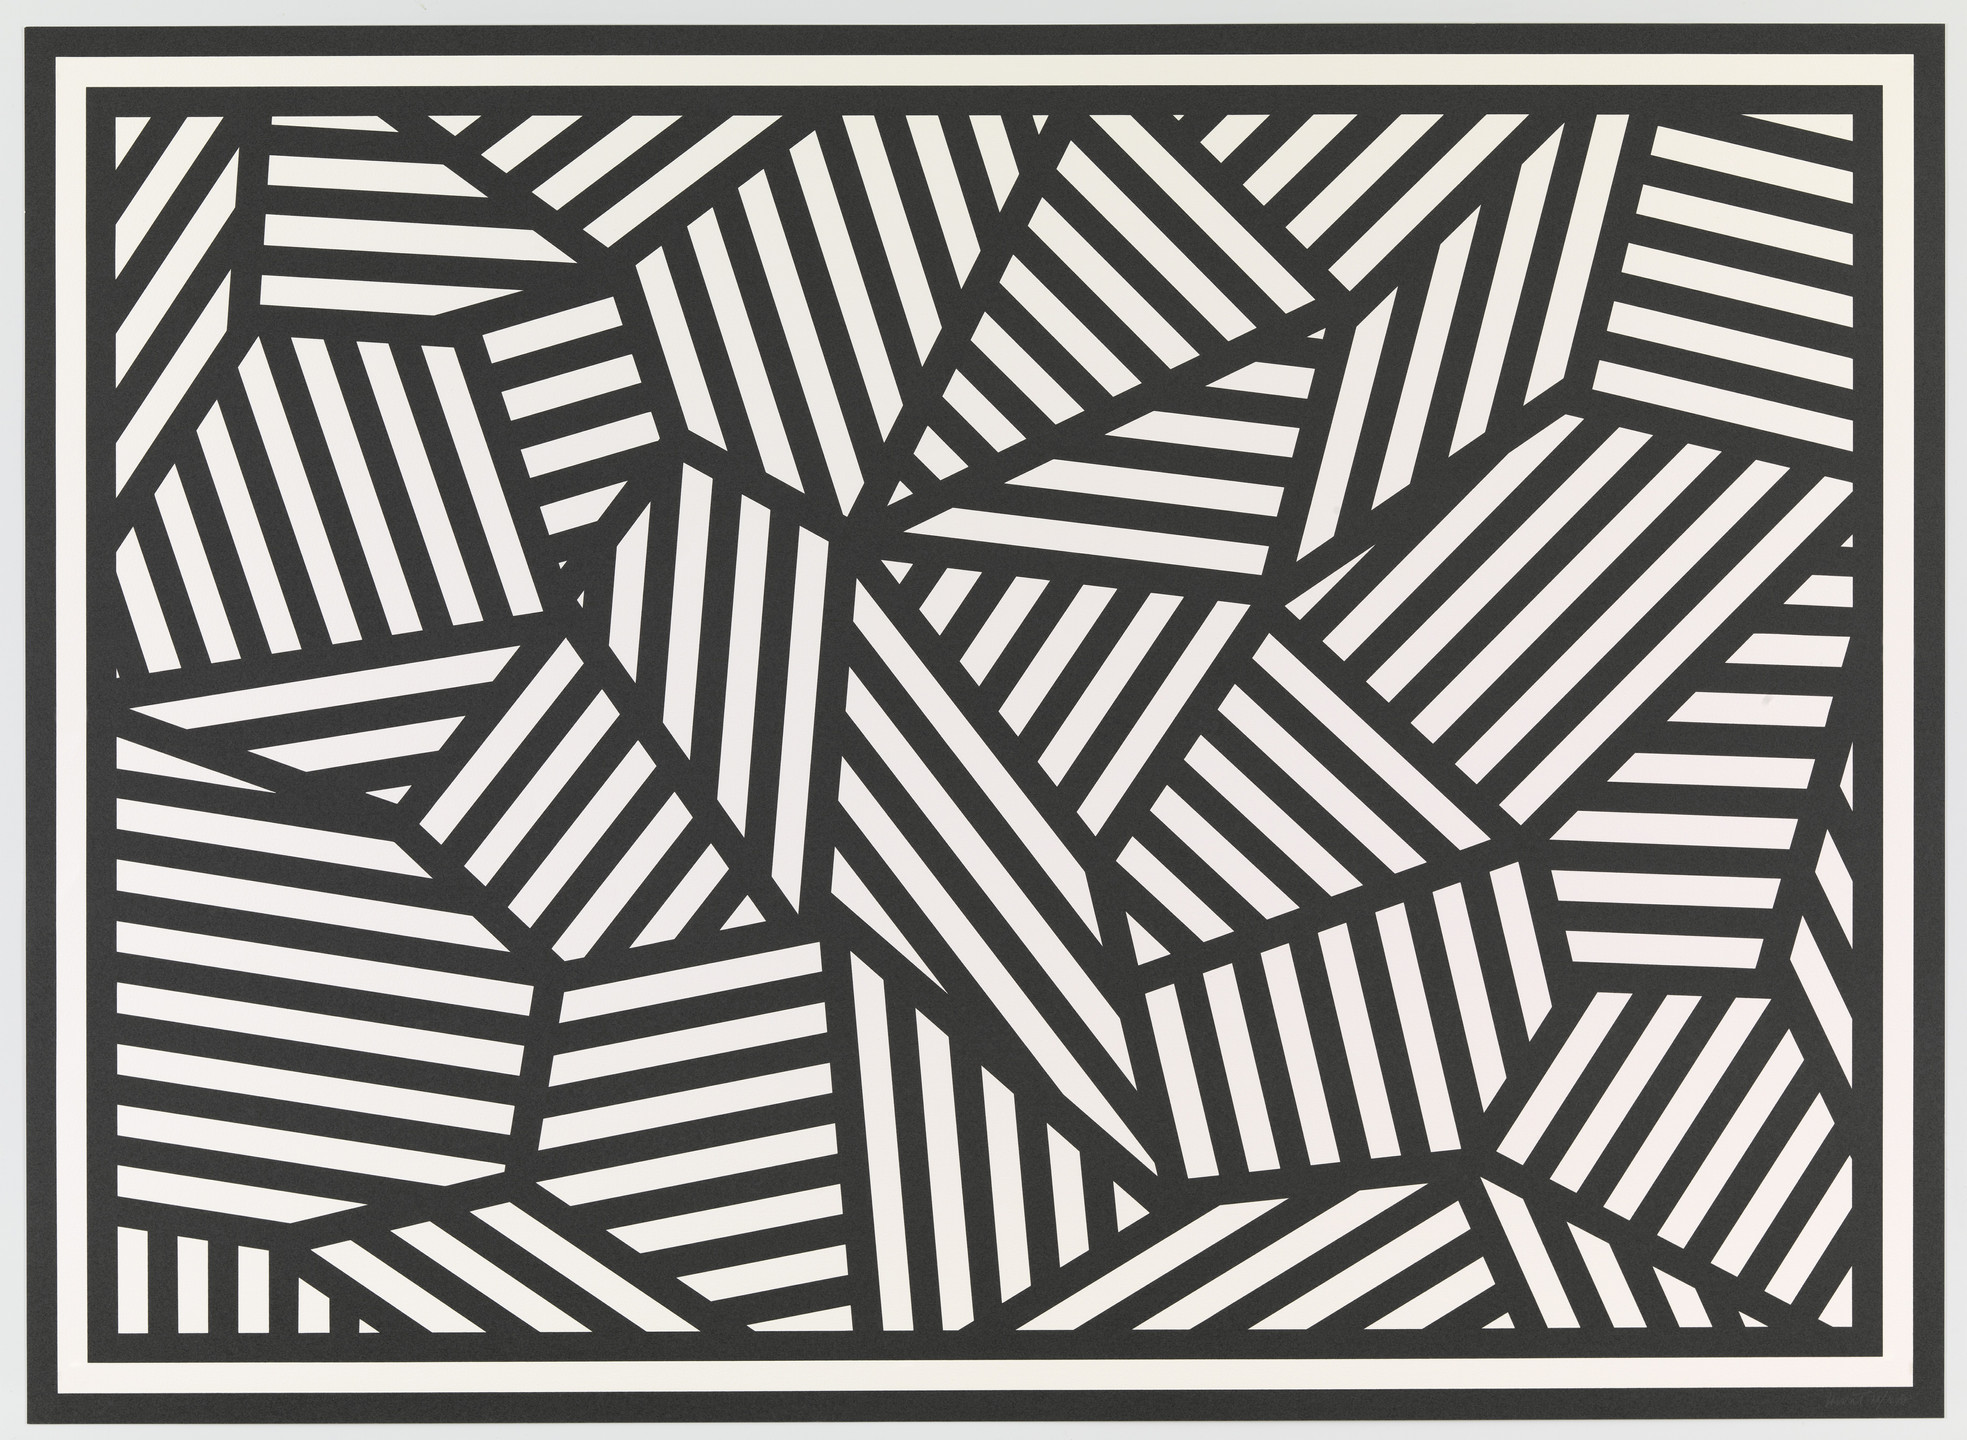 Sol LeWitt. Complex Form with Black and White Bands. 1988